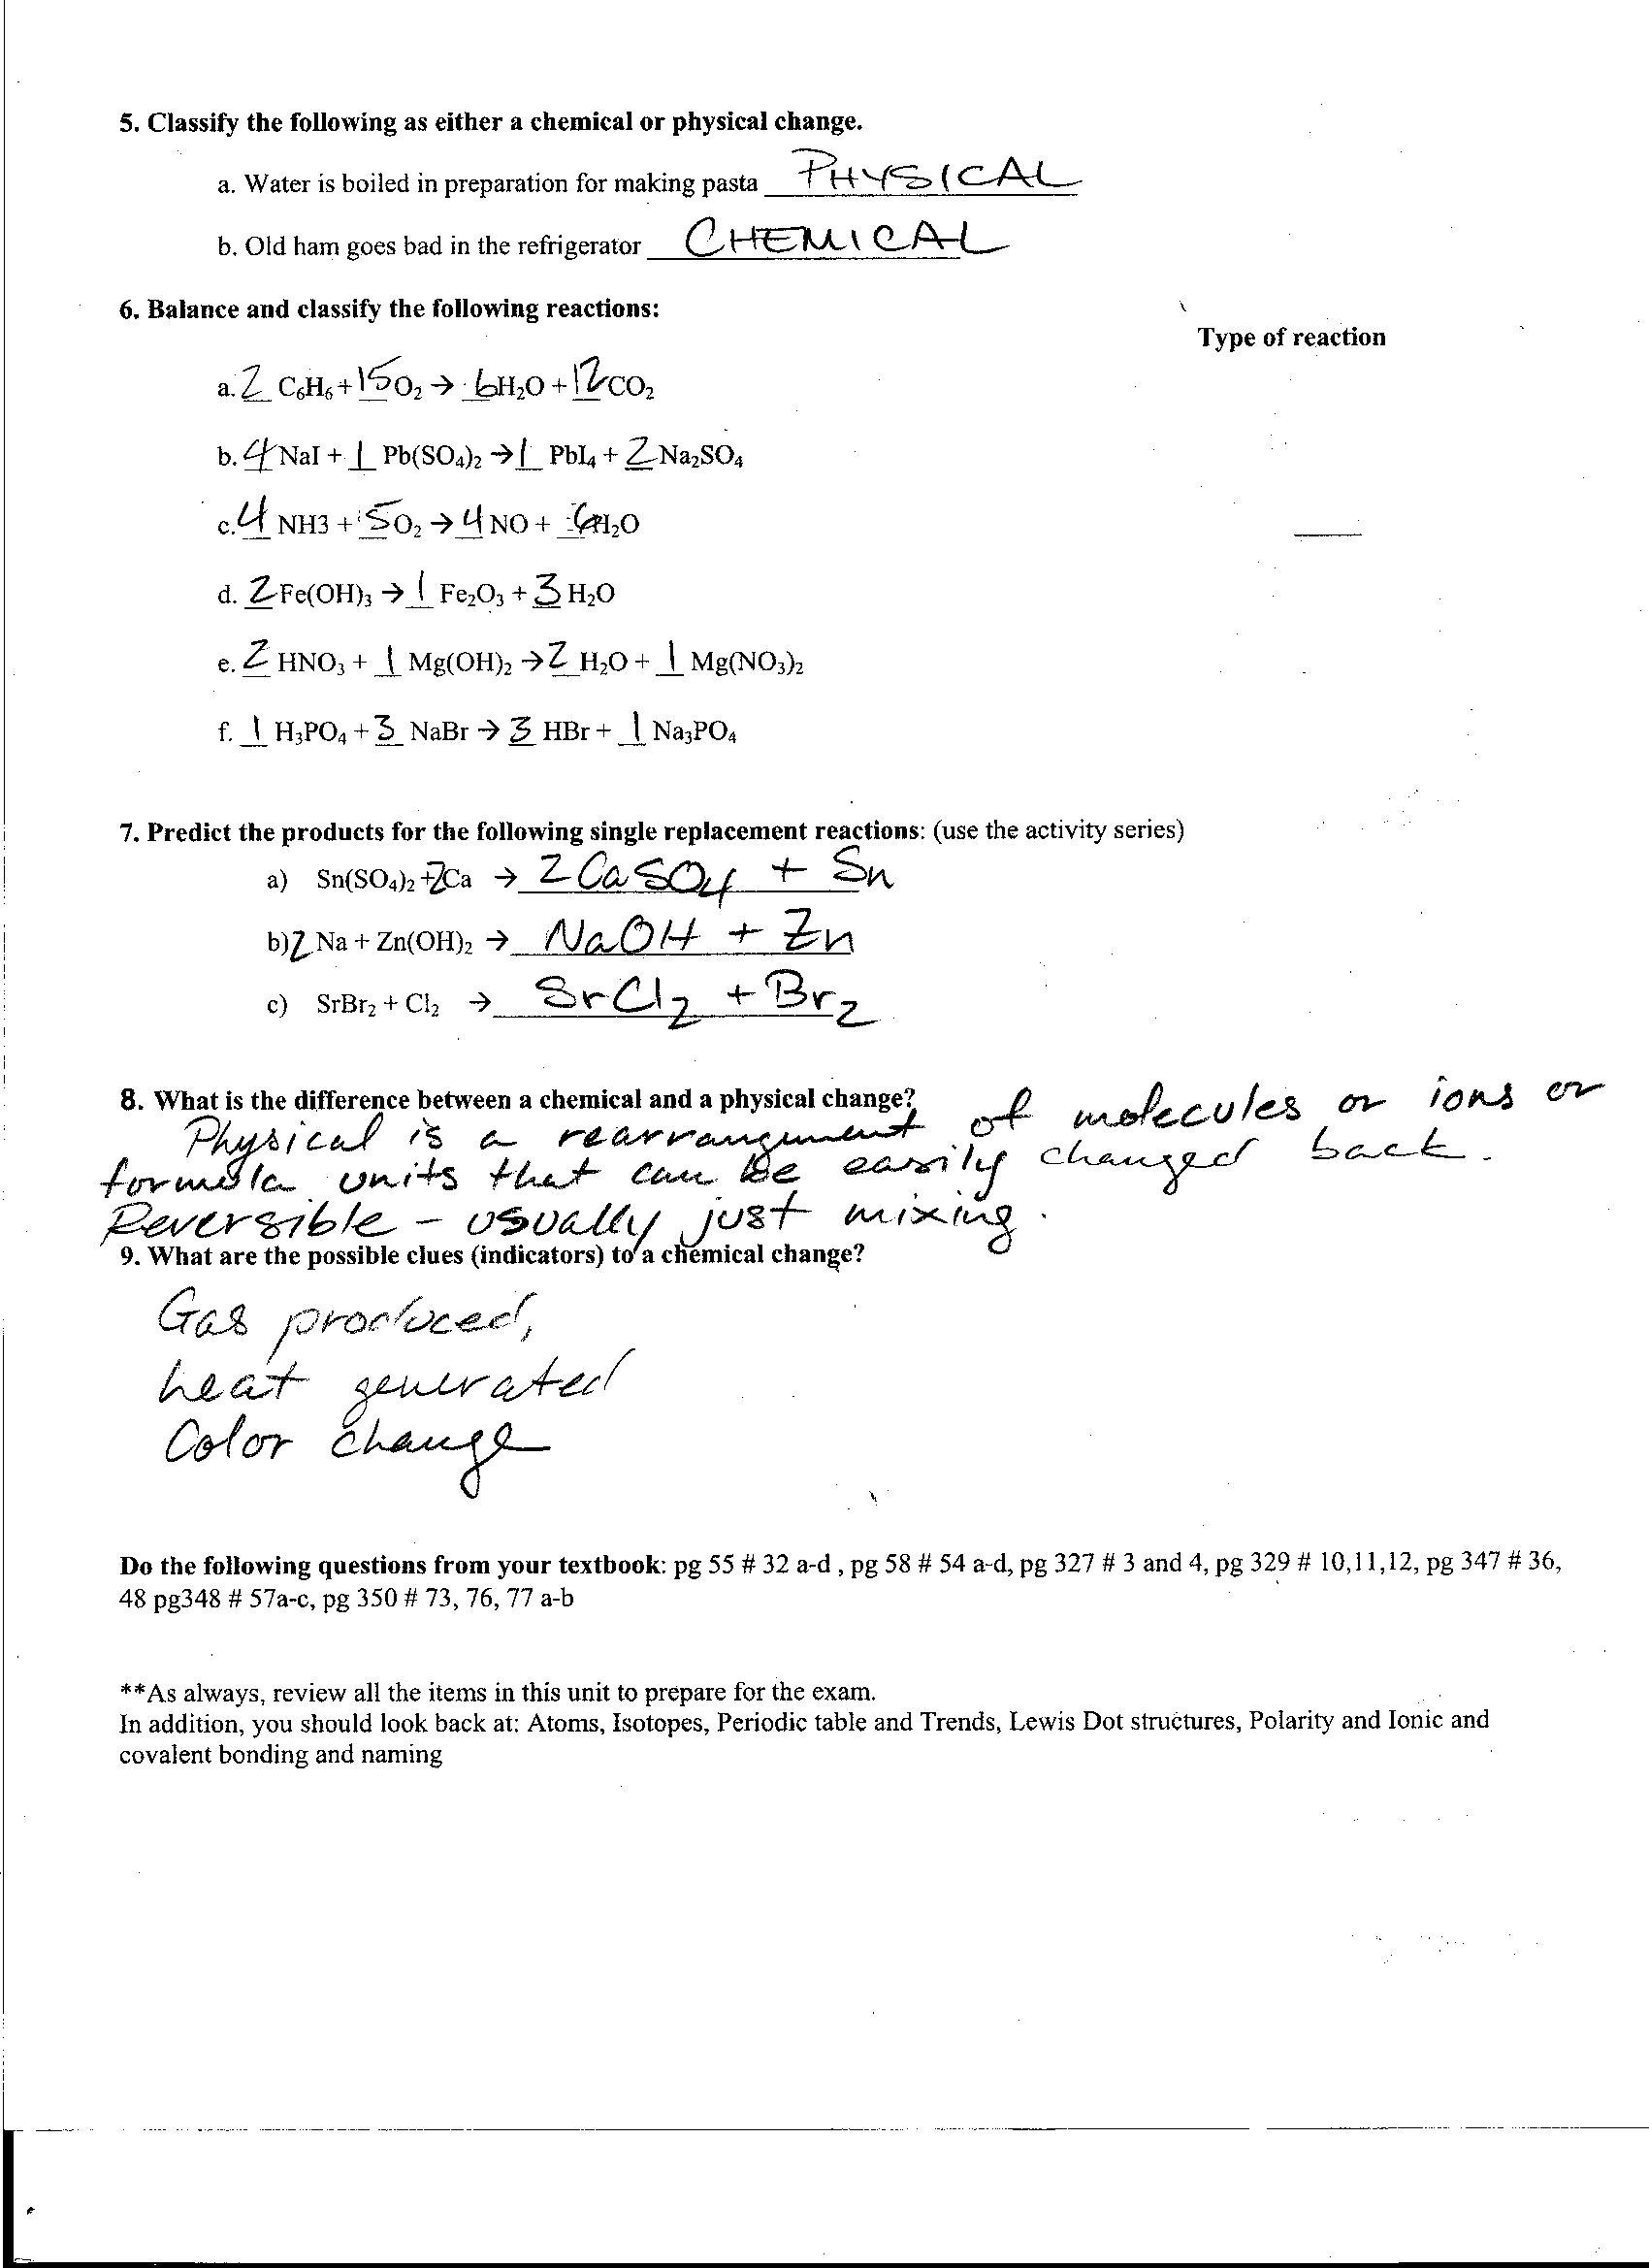 Periodic Trends Worksheet Answer Key Chemistry Unit 10 Worksheet 2 Periodic Trends